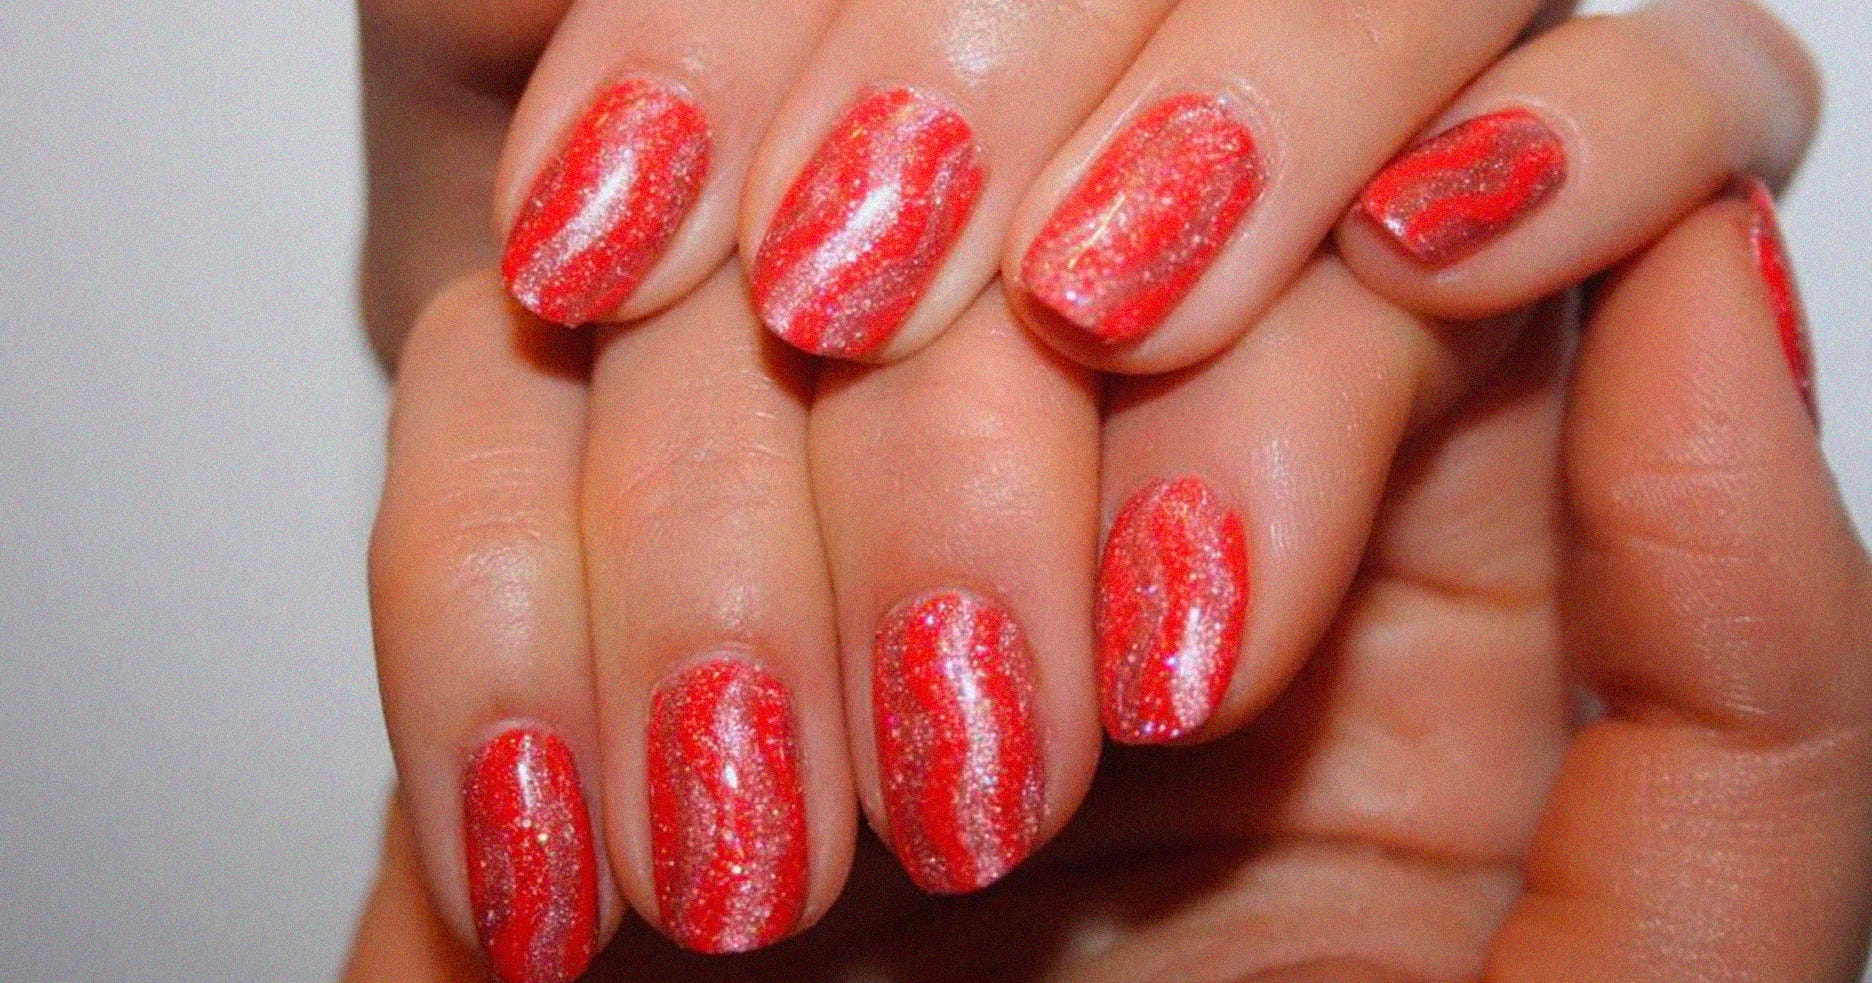 New Years Eve Nail Art Designs For Fun Holiday Manicure